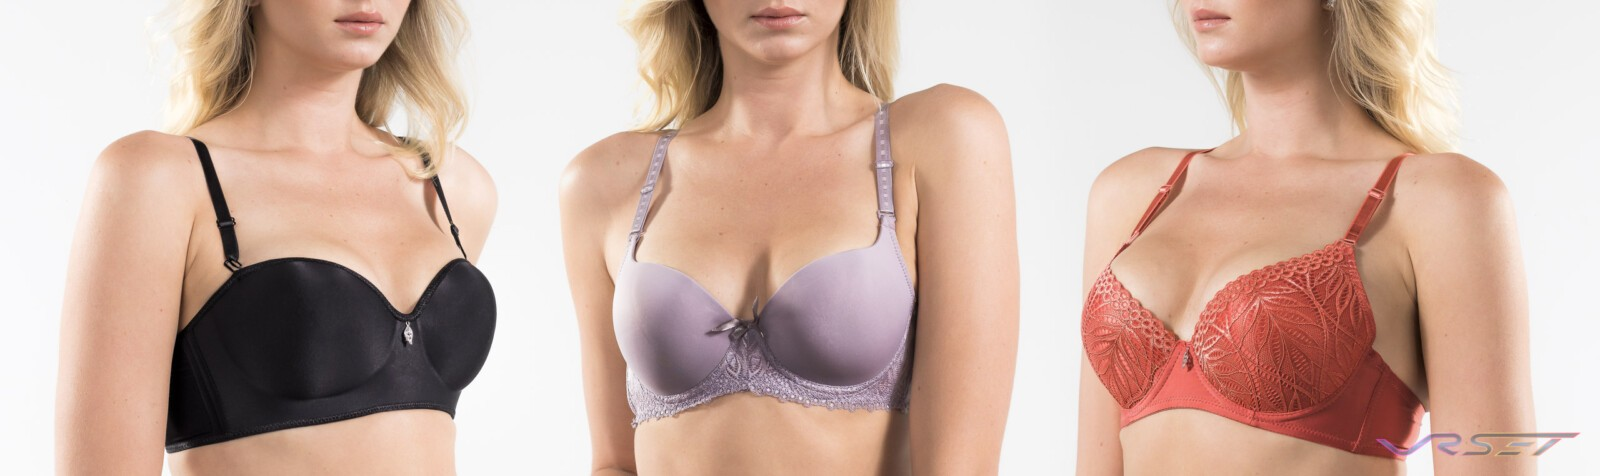 Amazon eCommerce Bra Collection Burnt Black Lavender Colors Bl Intimates Bestform Curvation Exquisite Form Lily Of France Vanity Fair Vassarette Brands Lingerie Intimates Studio